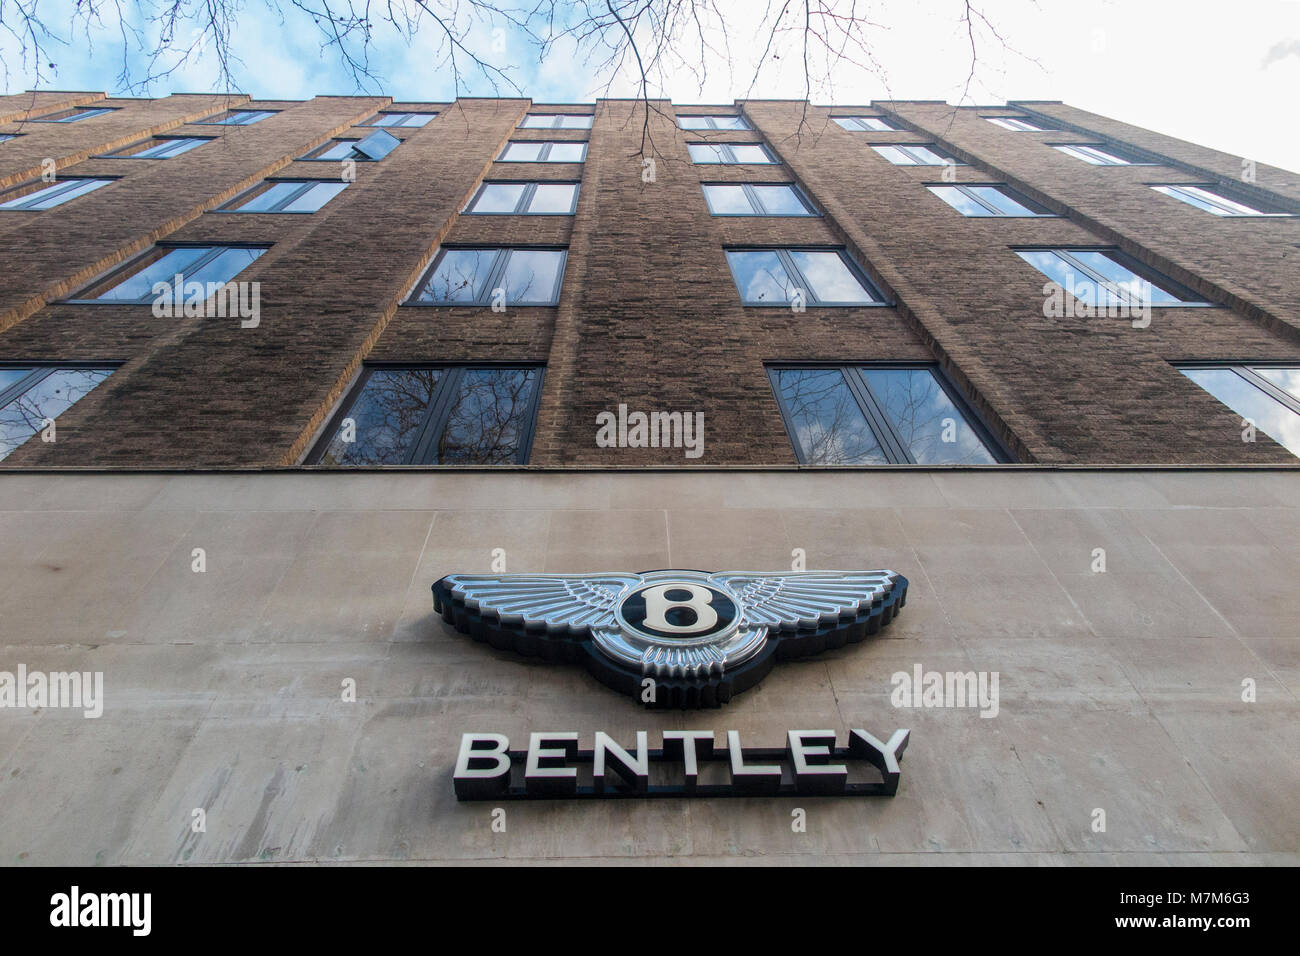 The famous Bentley logo on a car showroom in London - Stock Image